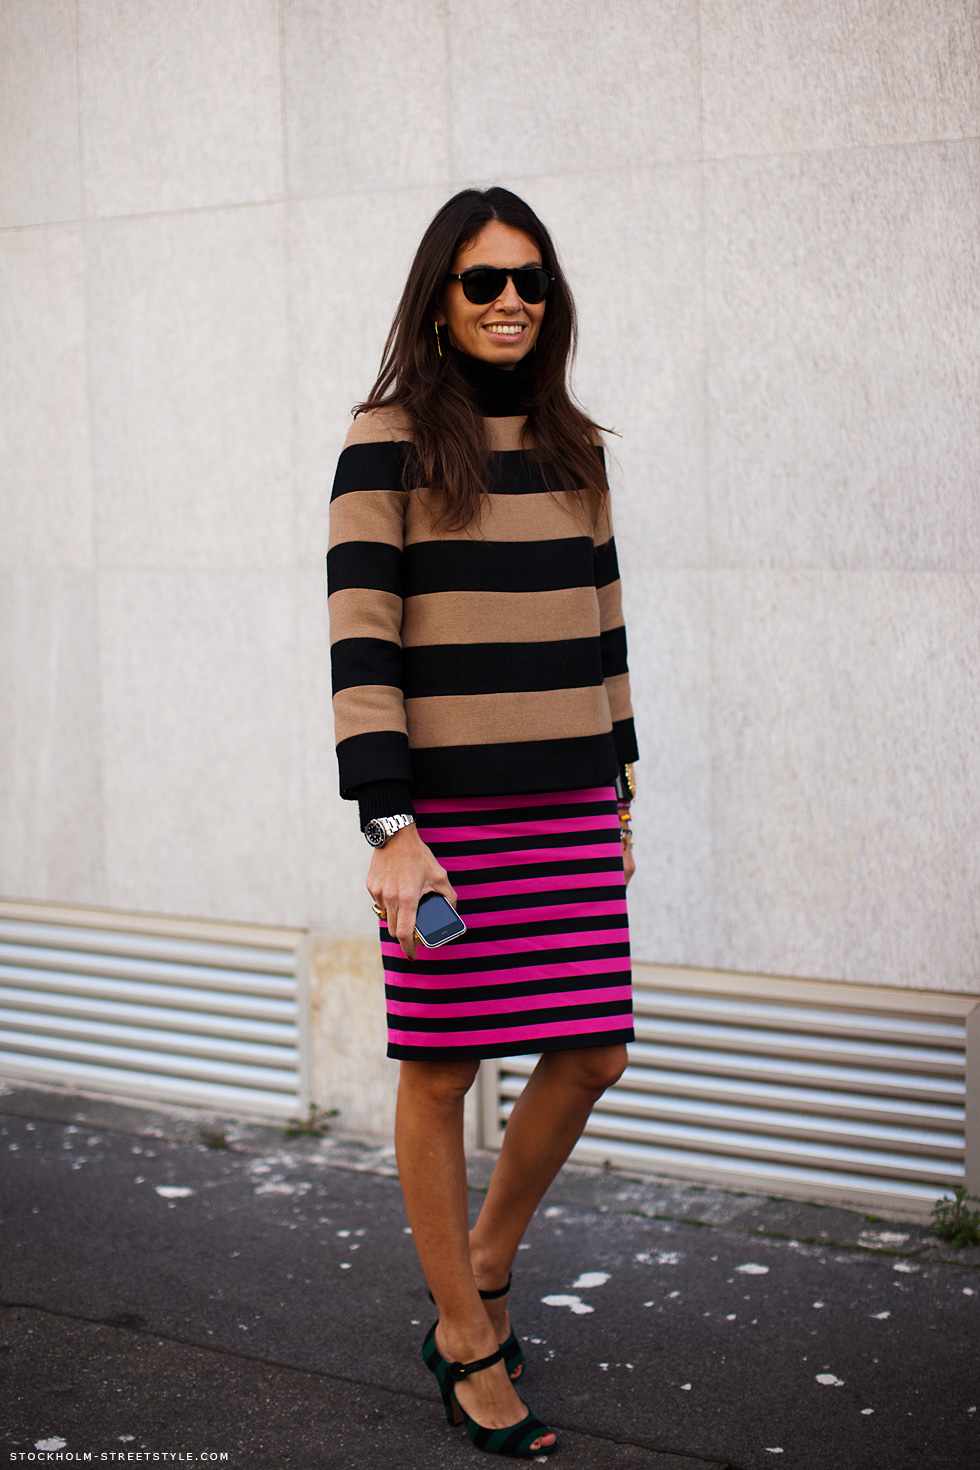 viviana volpicella milan fashion week striped sweater and skirt outfit street style sartorialist